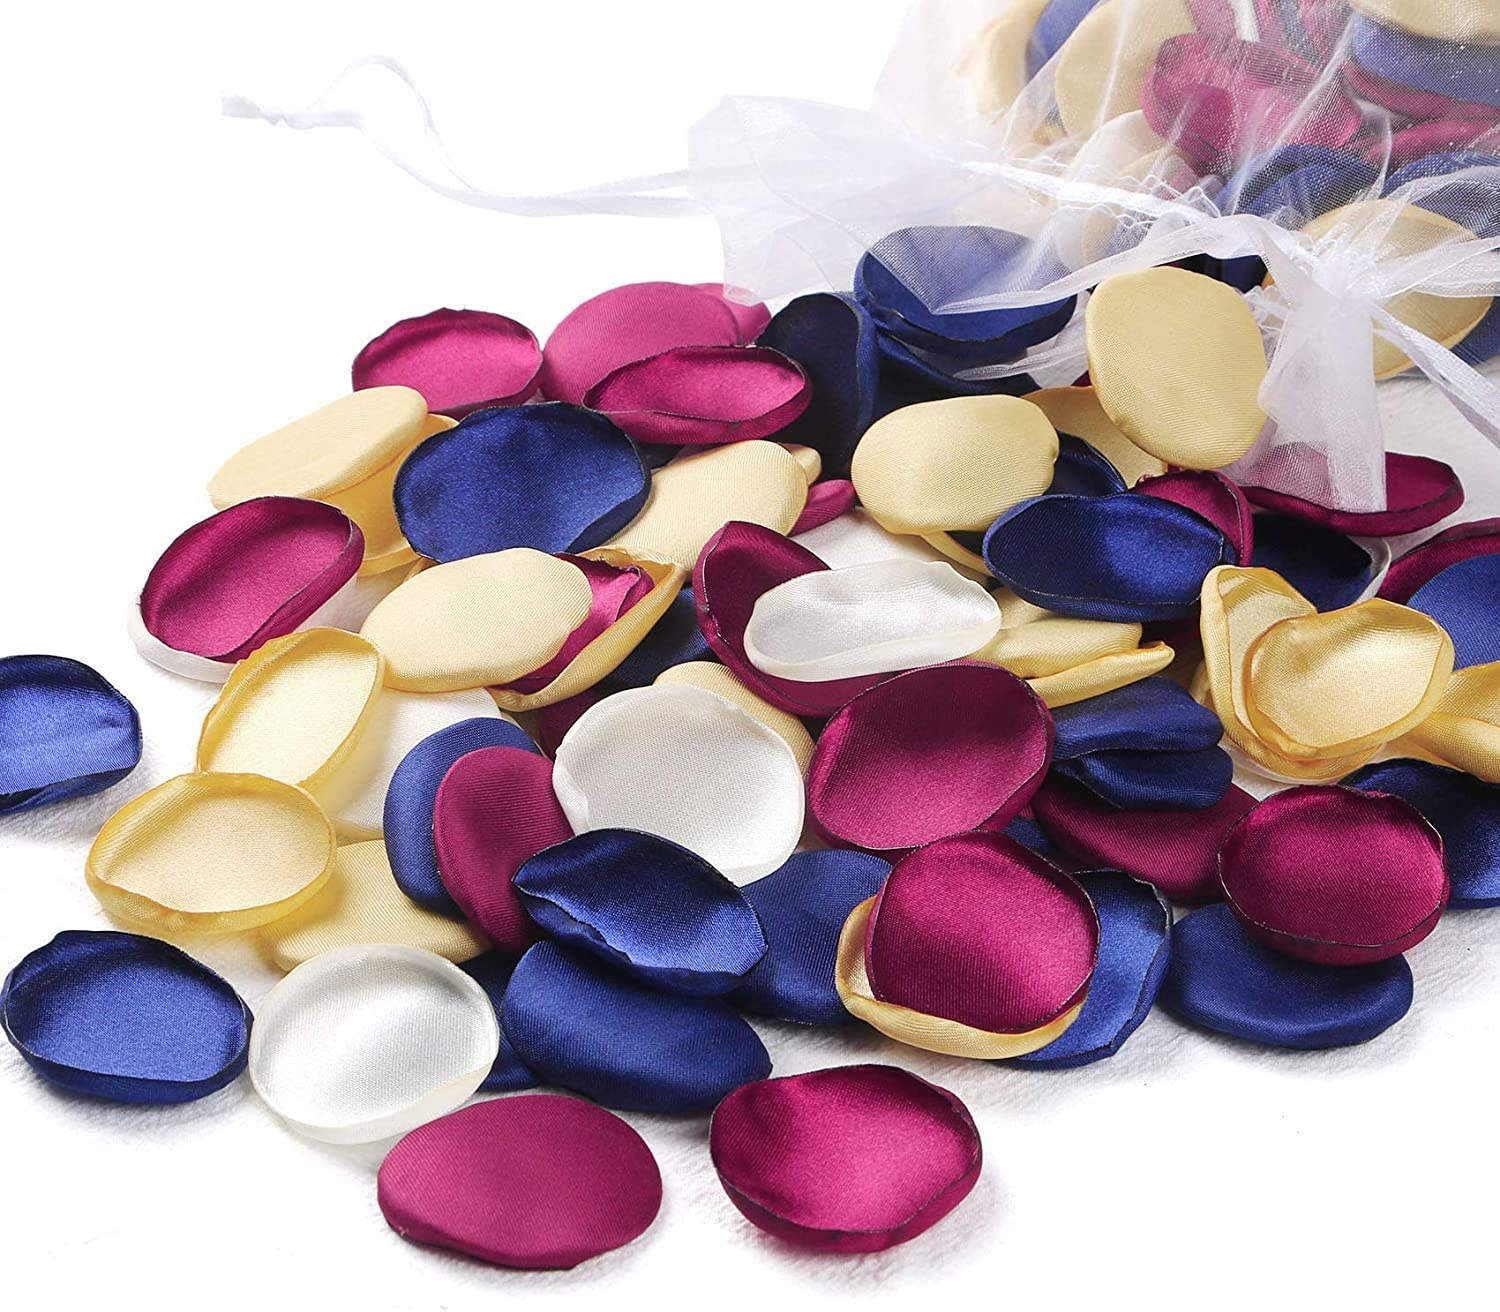 ponatia 300PCS Rose Petals Mixed Color Artificial Flowers Petals for Wedding Flower Girl Basket Aisle Centerpieces Table Confetti Party Favors Home Decoration (Navy Blue/Burgundy/Gold/Ivory)